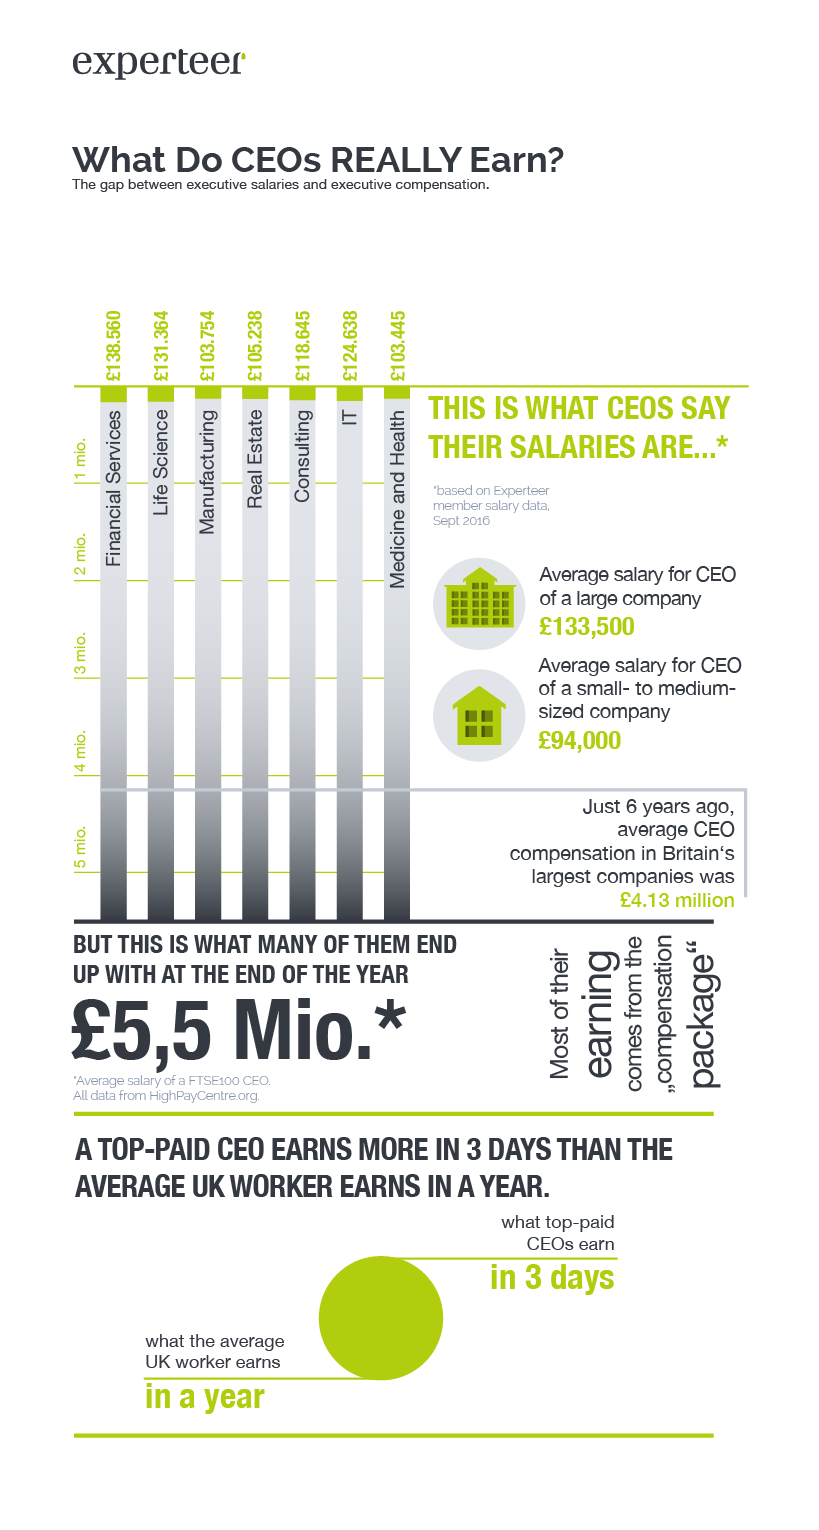 What Do CEOs Really Earn in the UK 1/3